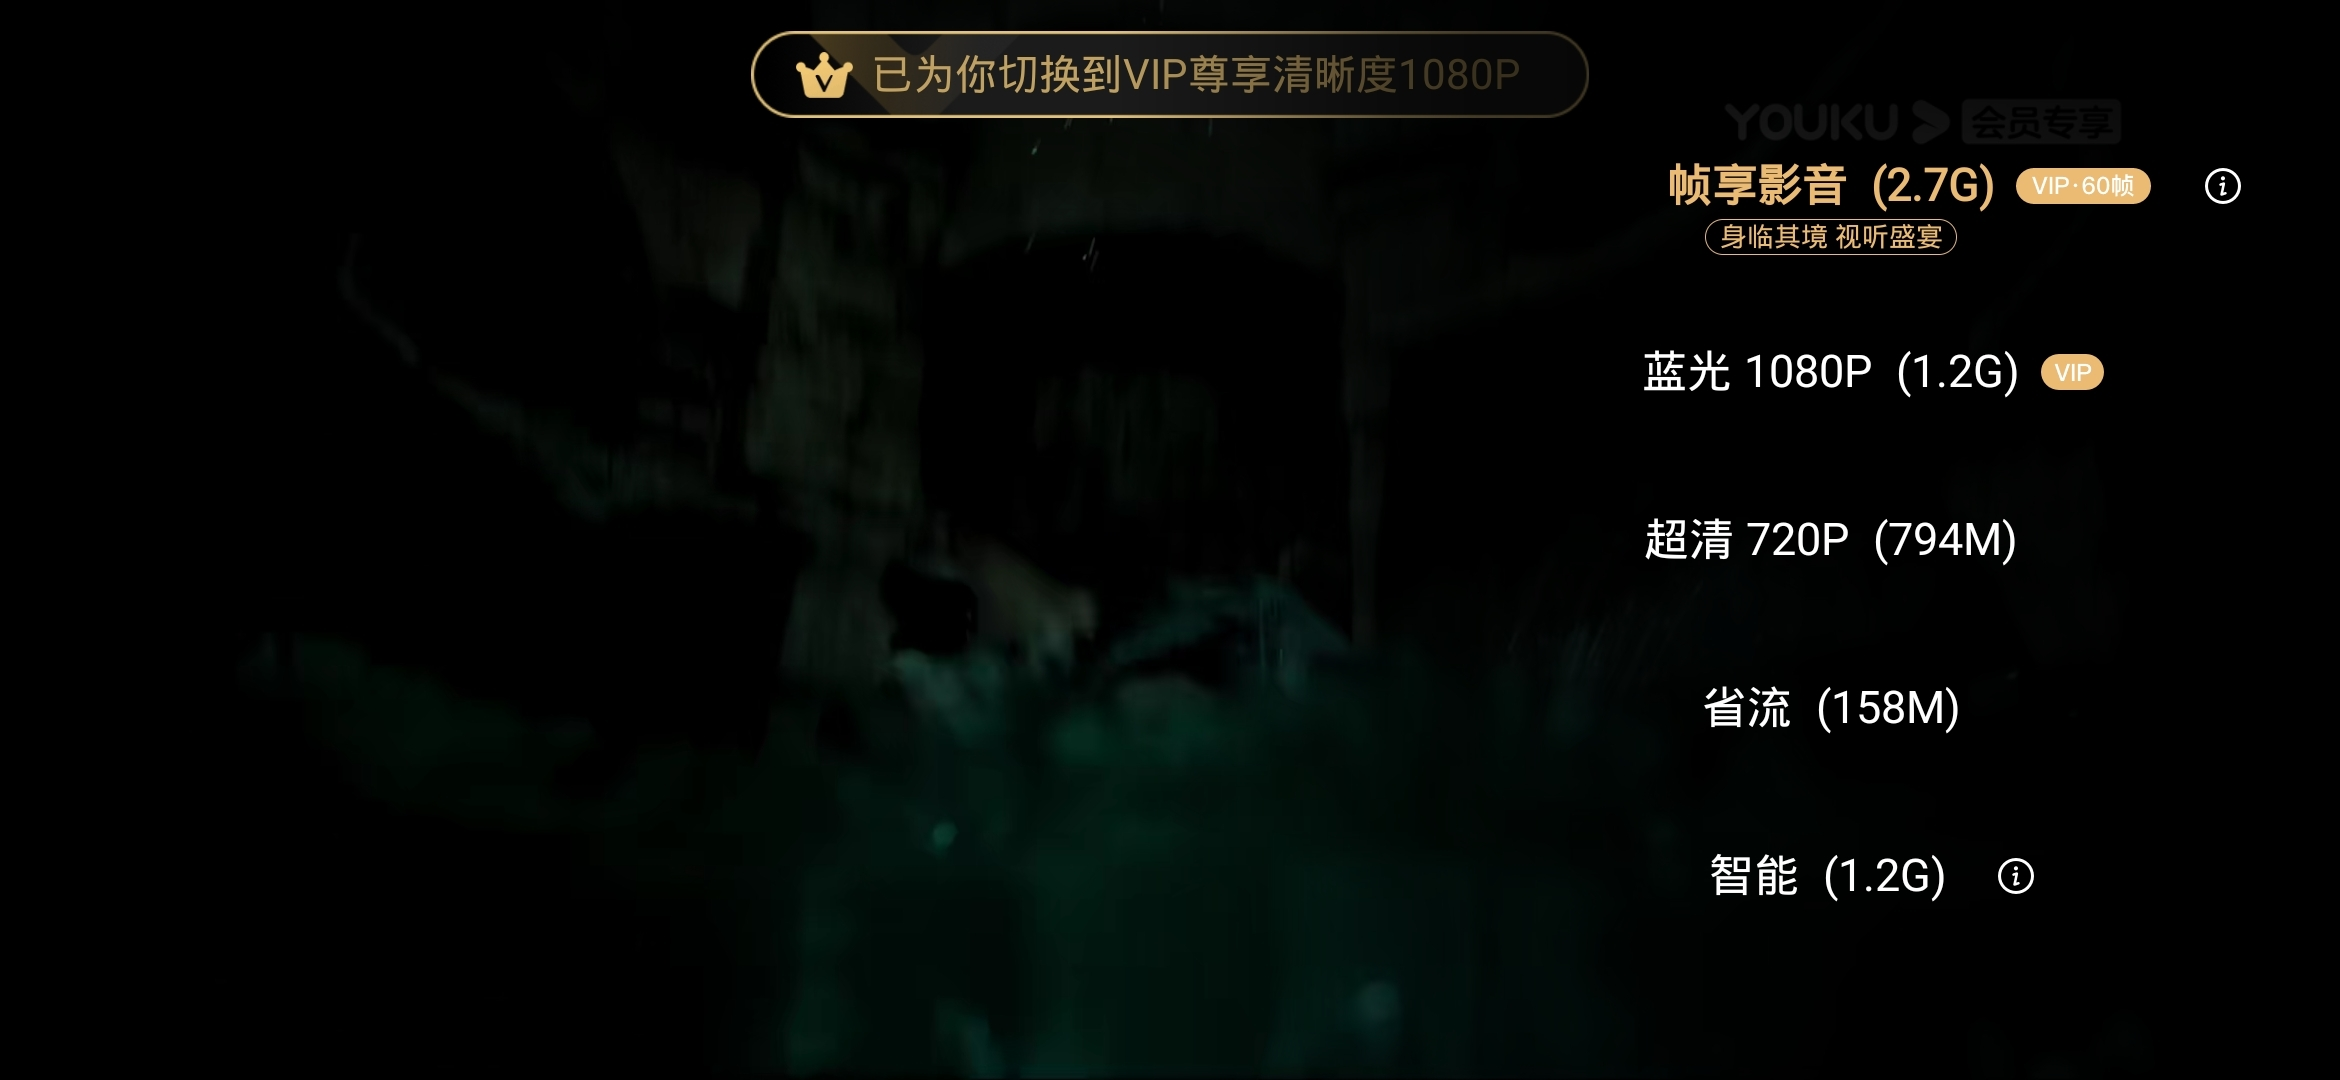 Screenshot_20200510_132344_com.youku.phone.jpg